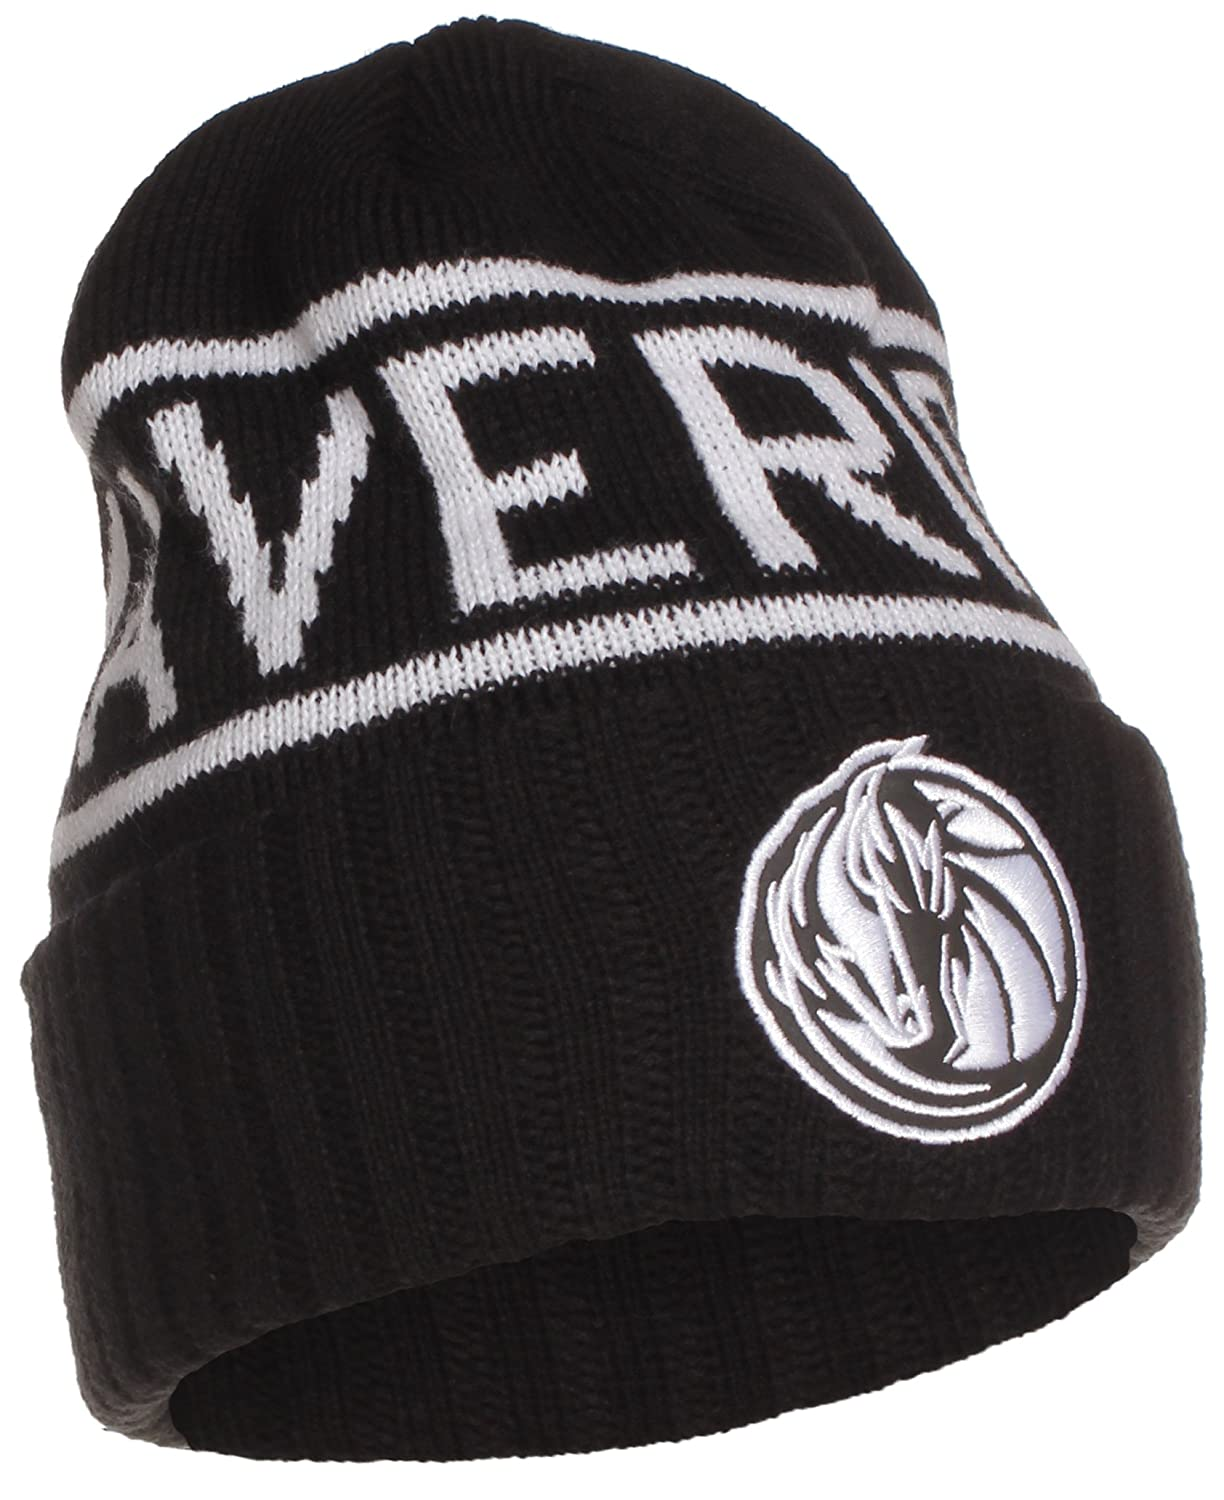 c451aede79a Mitchell ness nba licensed winter beanie cuffed knit skully hat cap black  dallas mavericks sports outdoors